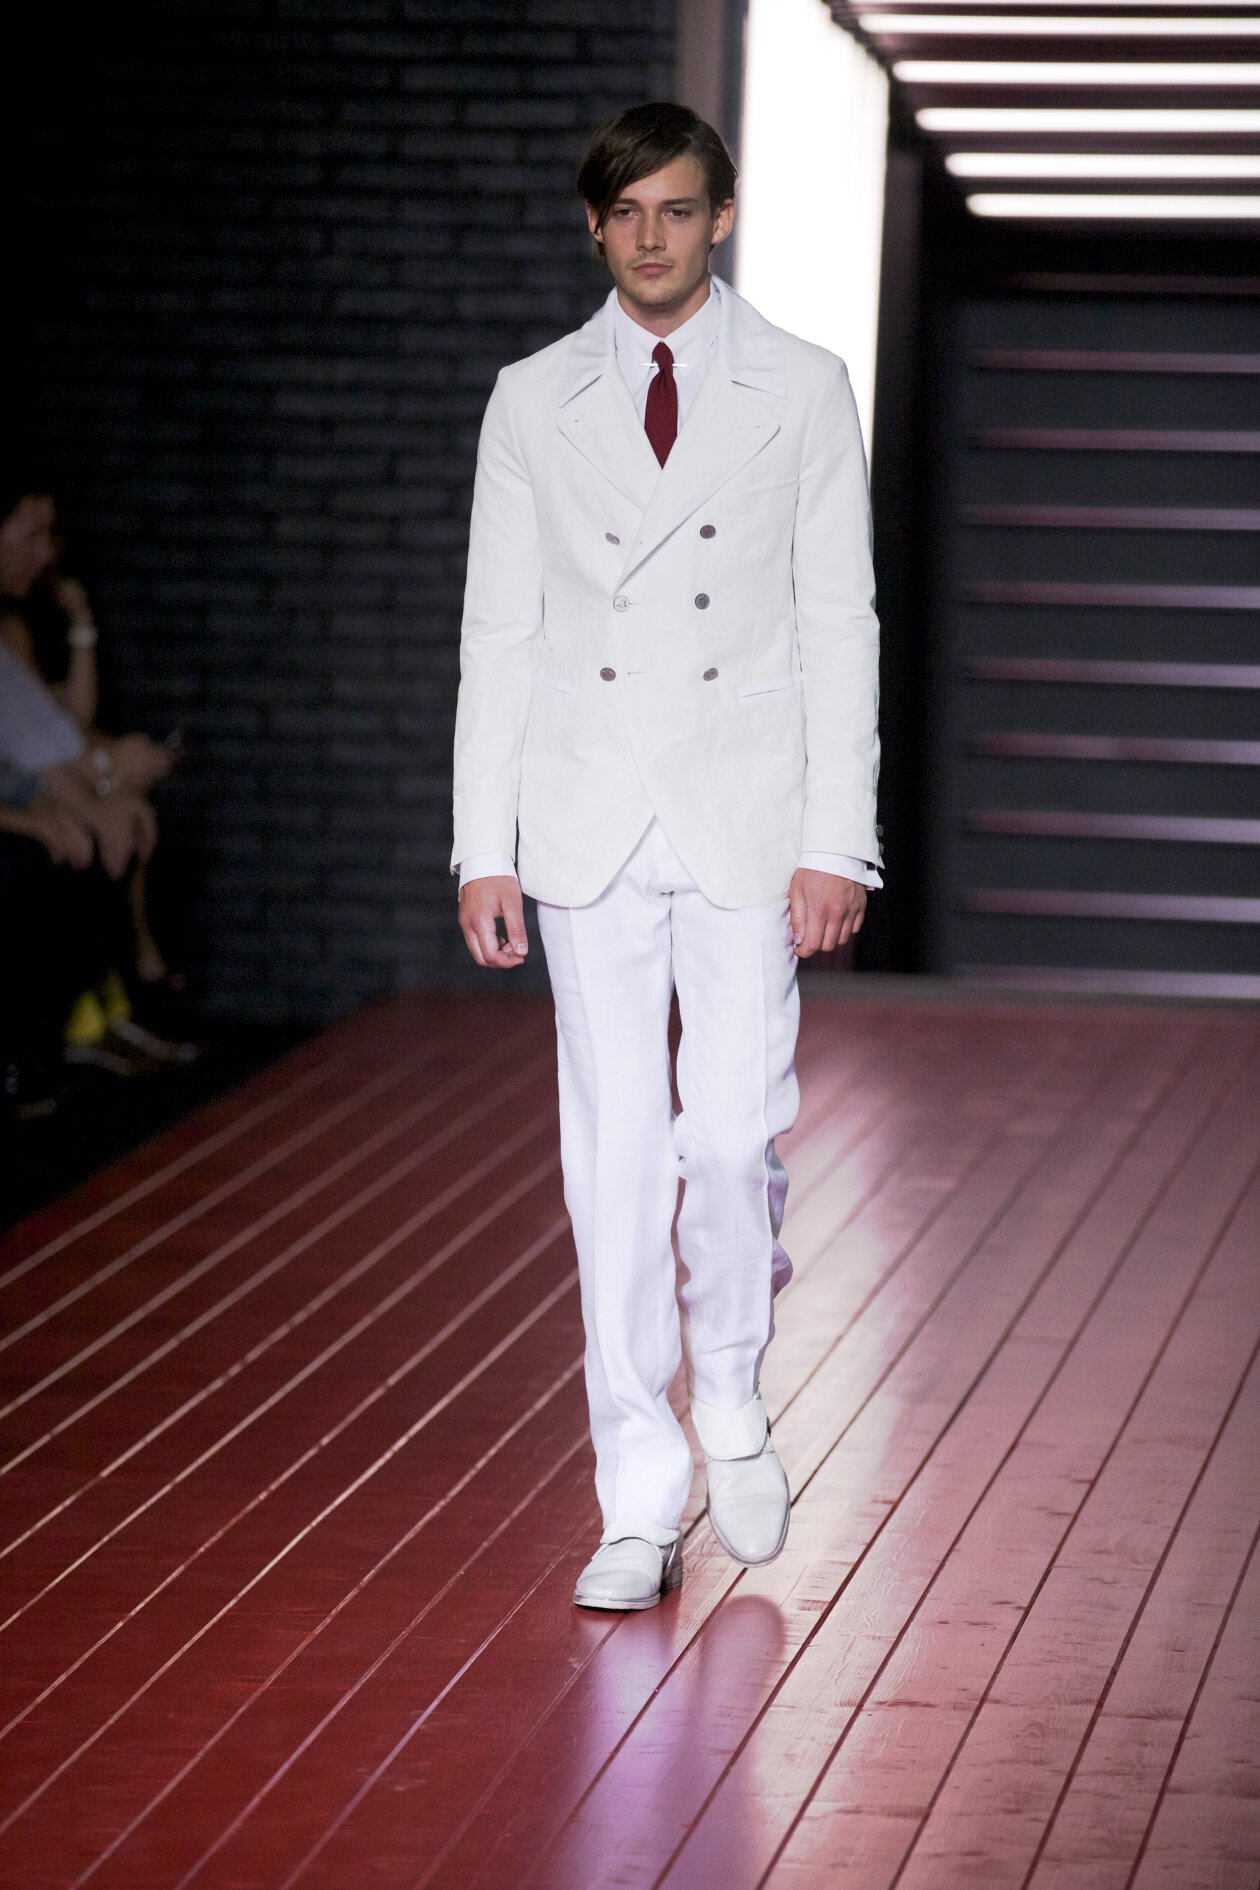 John Varvatos Spring Summer 2013 Men's Collection - Milano Fashion Week - John Varvatos 2013 SS